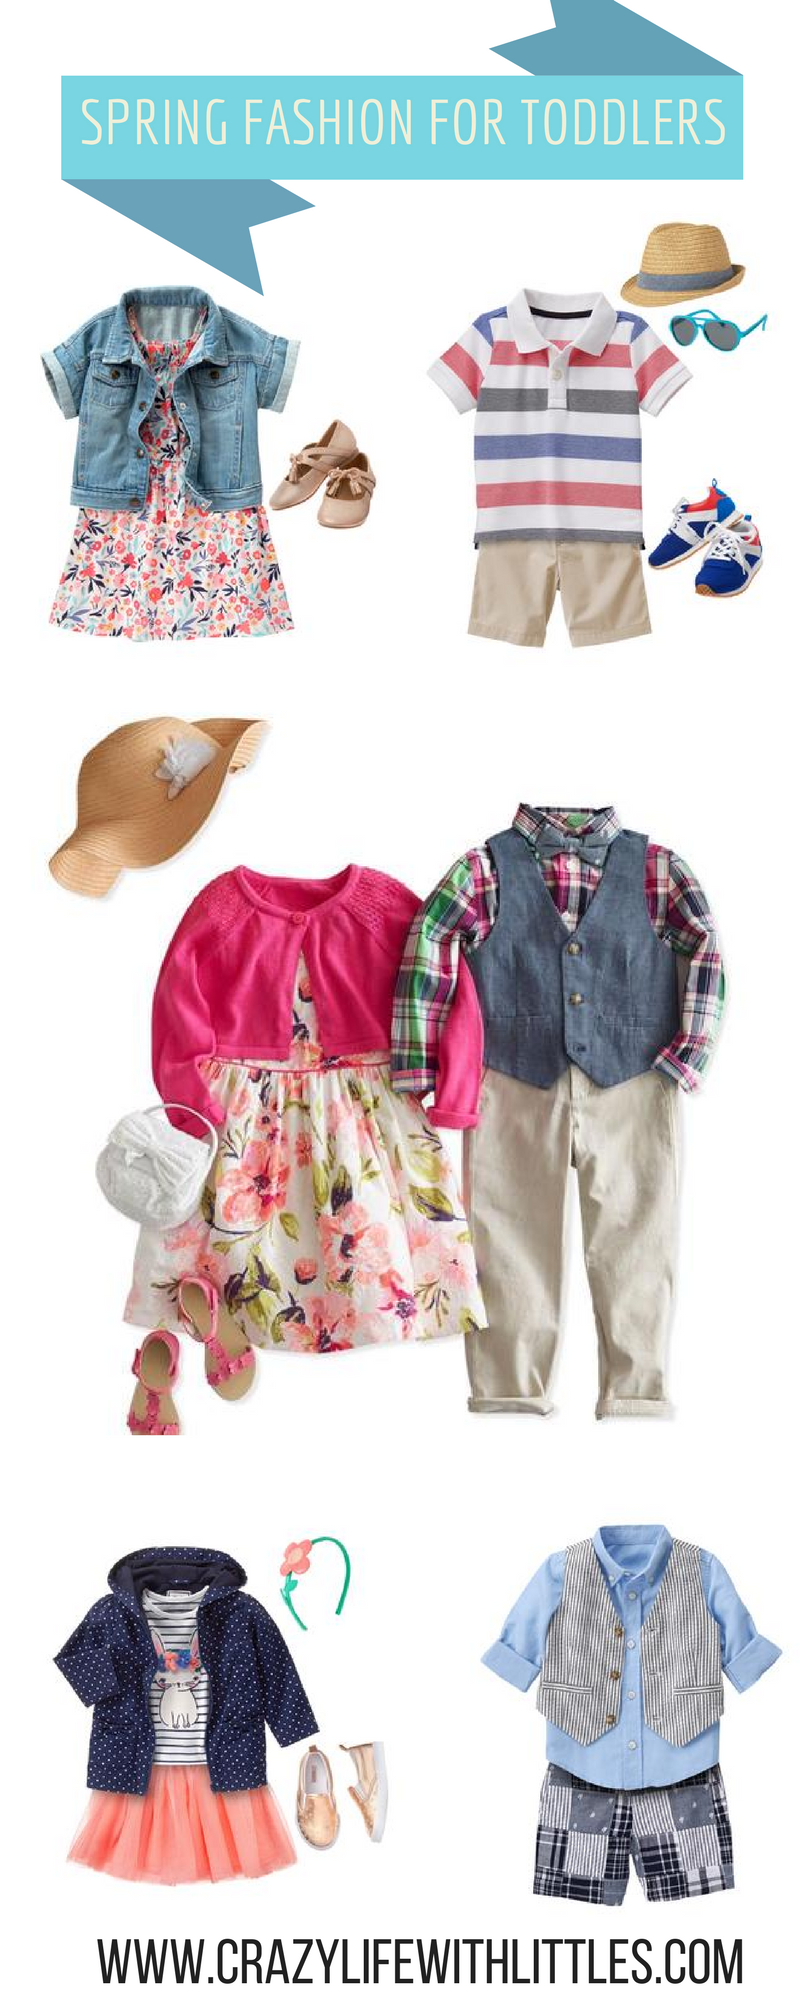 Spring Fashion for Toddlers, Easter outfits, Spring Girls Fashion, Spring Boys Fashion, Gymboree, Target Baby, Janie and Jack